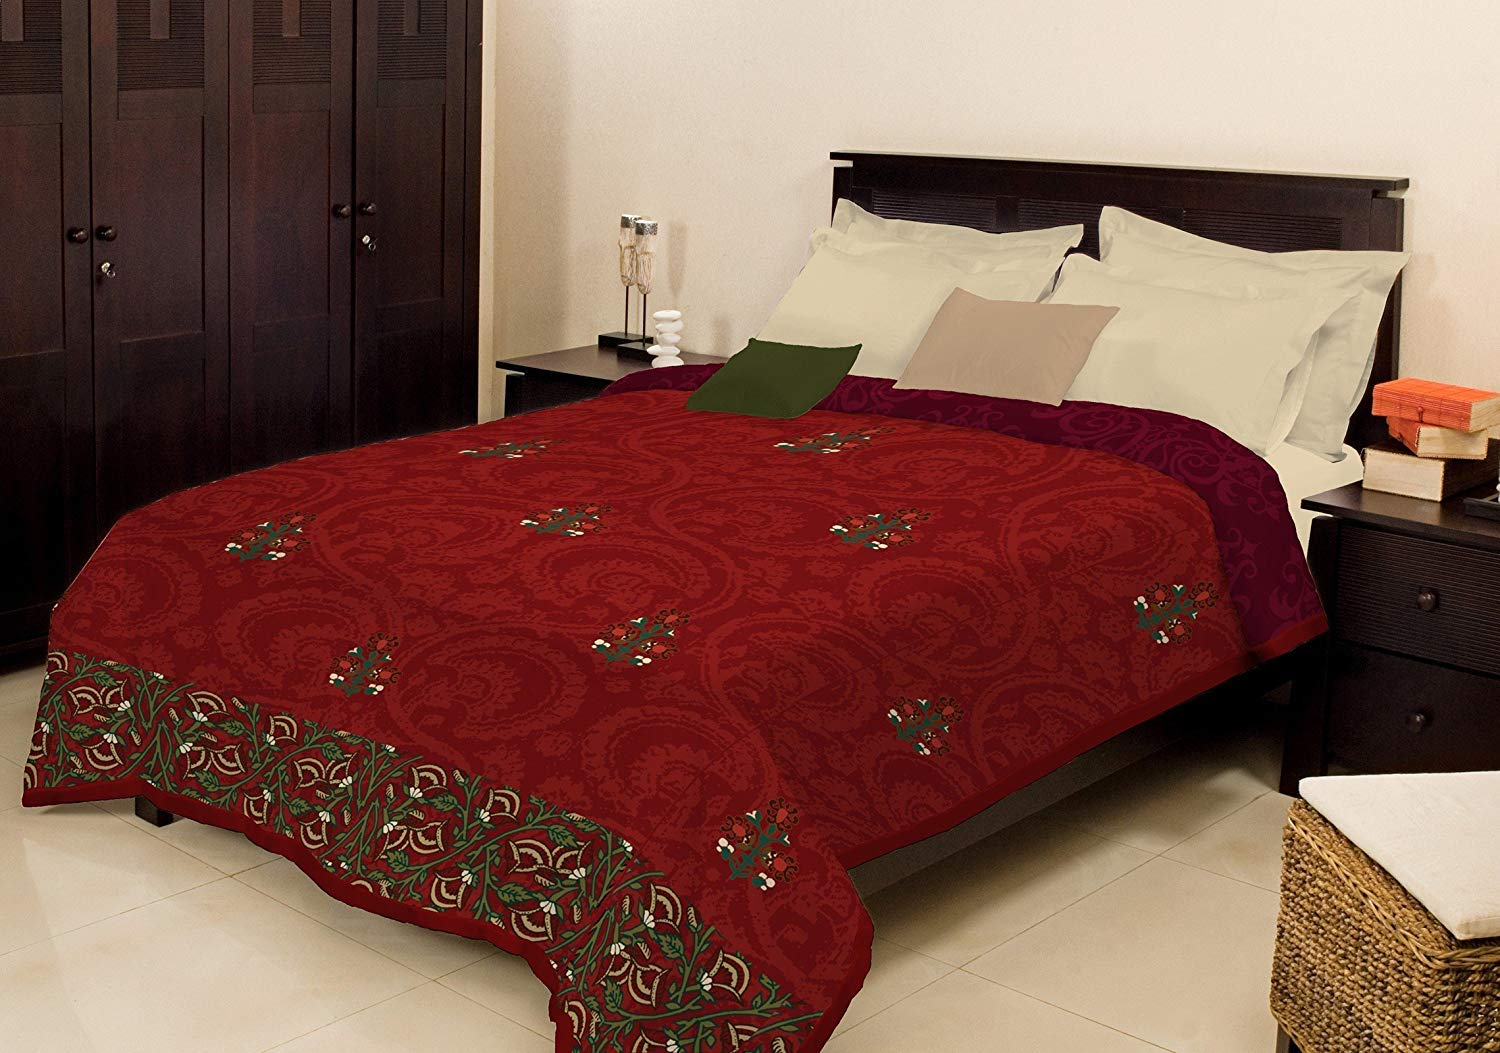 Bombay Dyeing Polyester Double Bed Winter Blanket